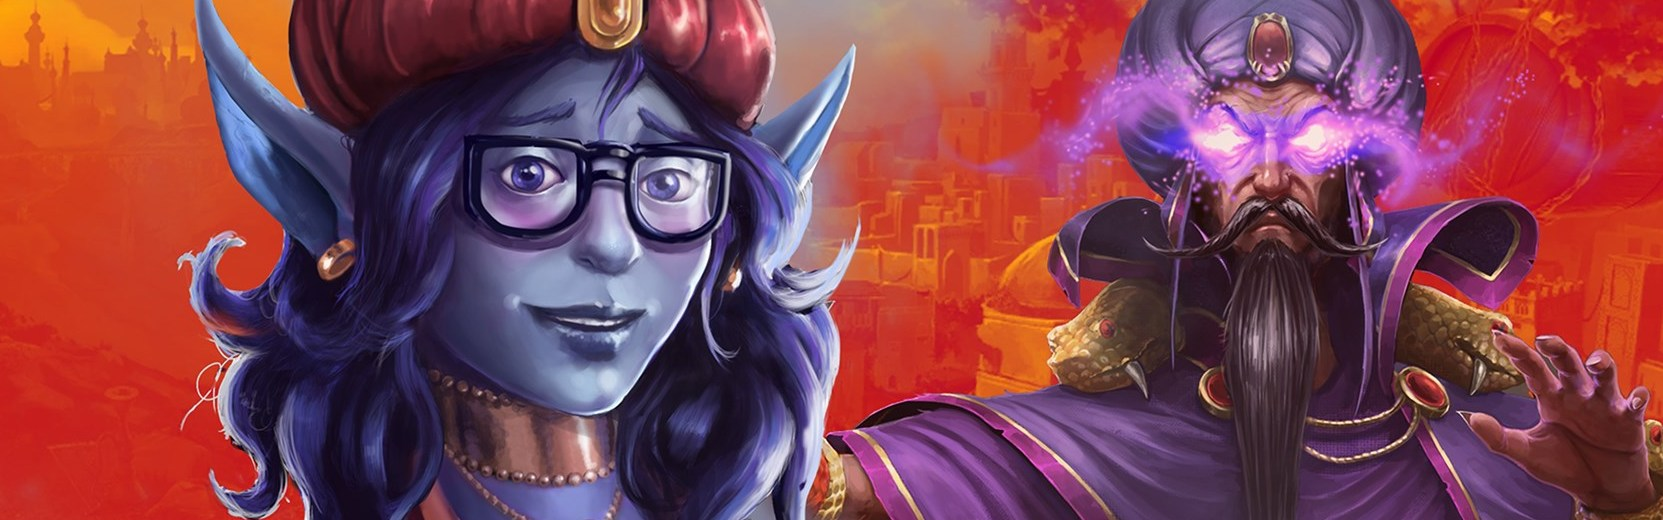 Persian Nights: Sands of Wonders Steam Key GLOBAL